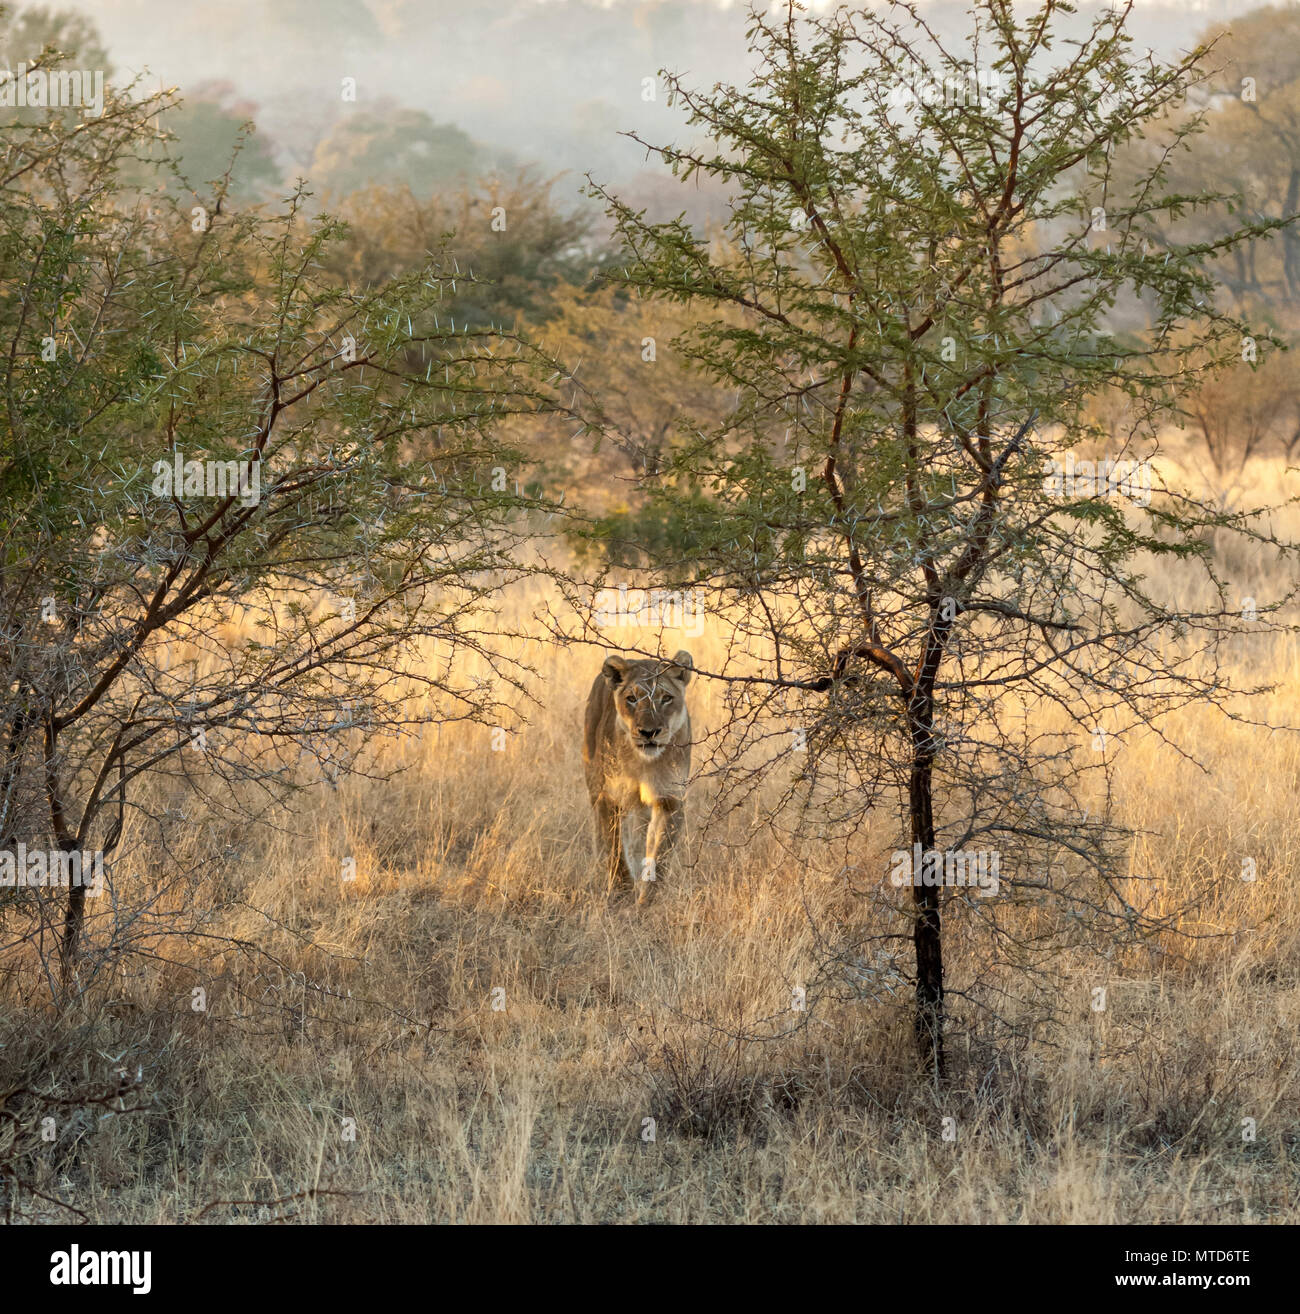 Lionness hunting in the early morning light at Sabi Sand Game Reserve - Stock Image